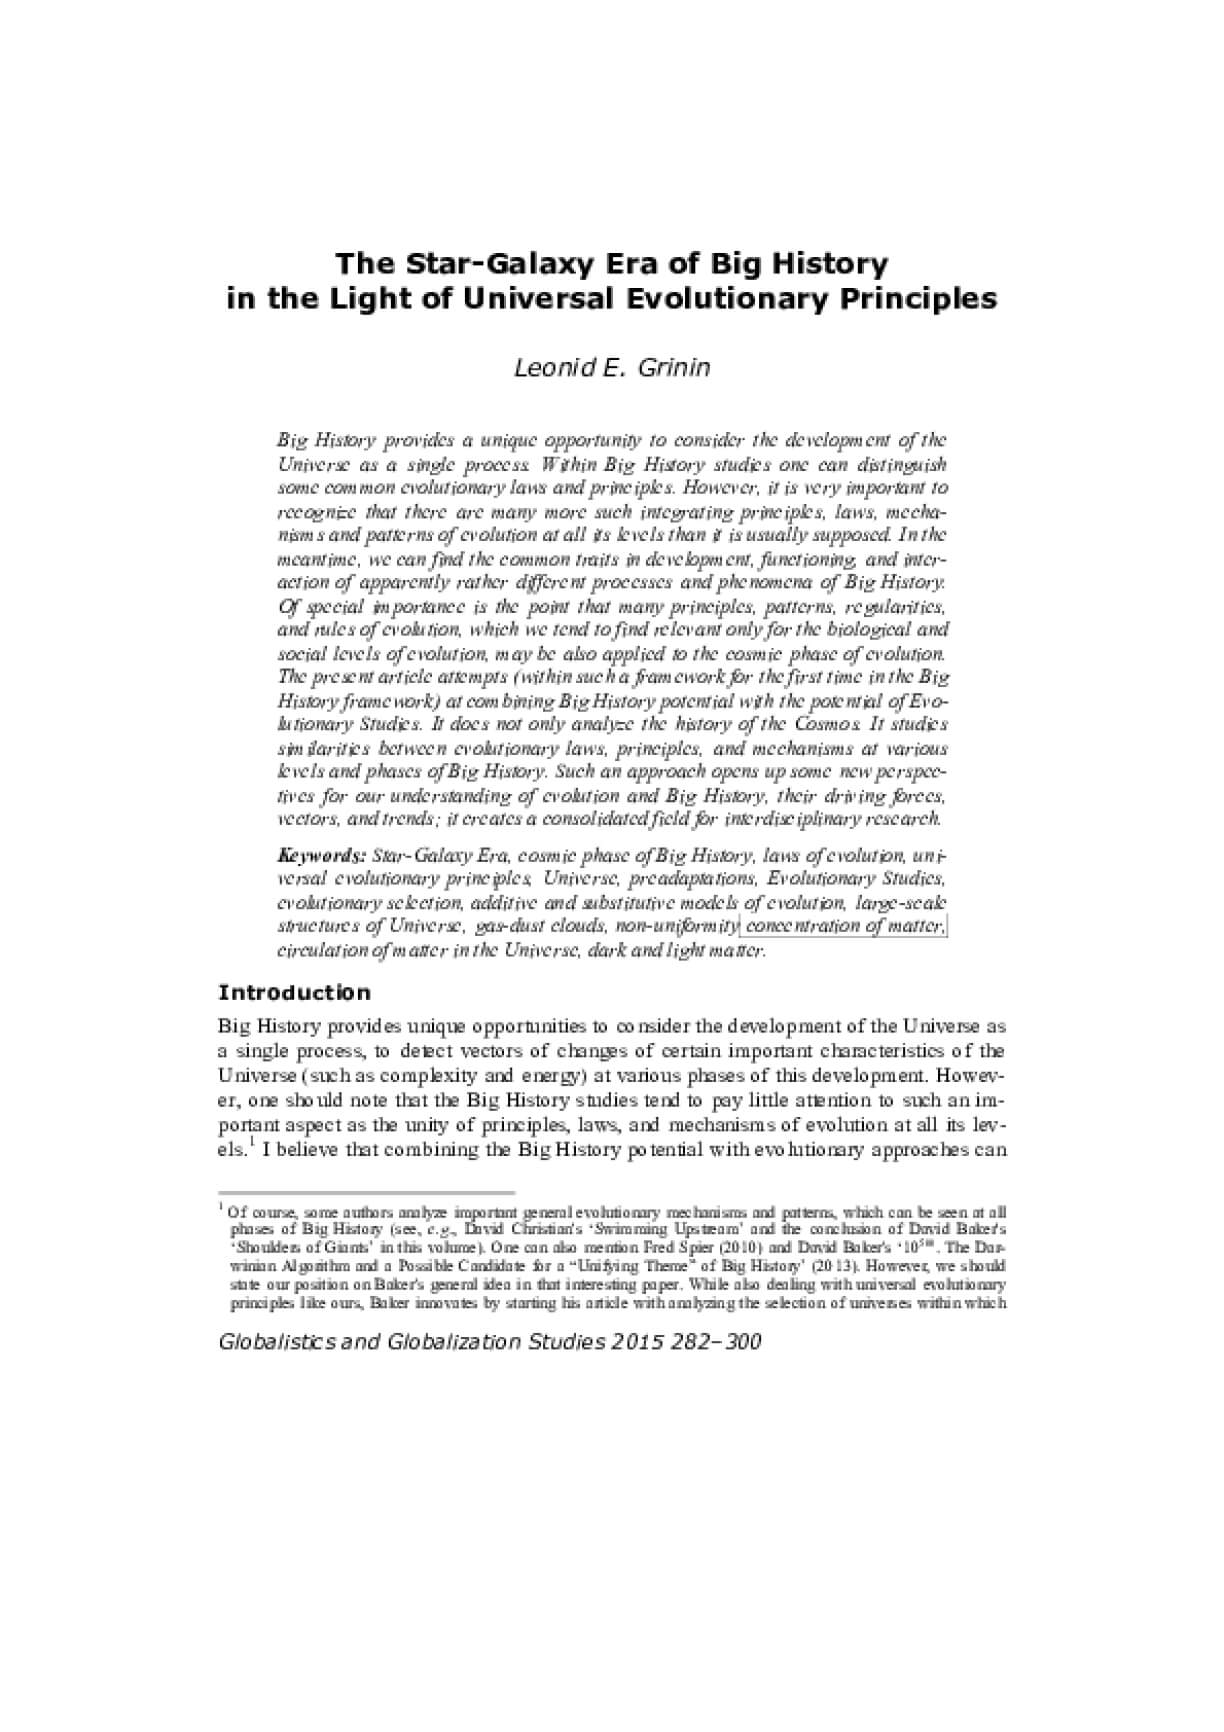 The Star-Galaxy Era of Big History in the Light of Universal Evolutionary Principles